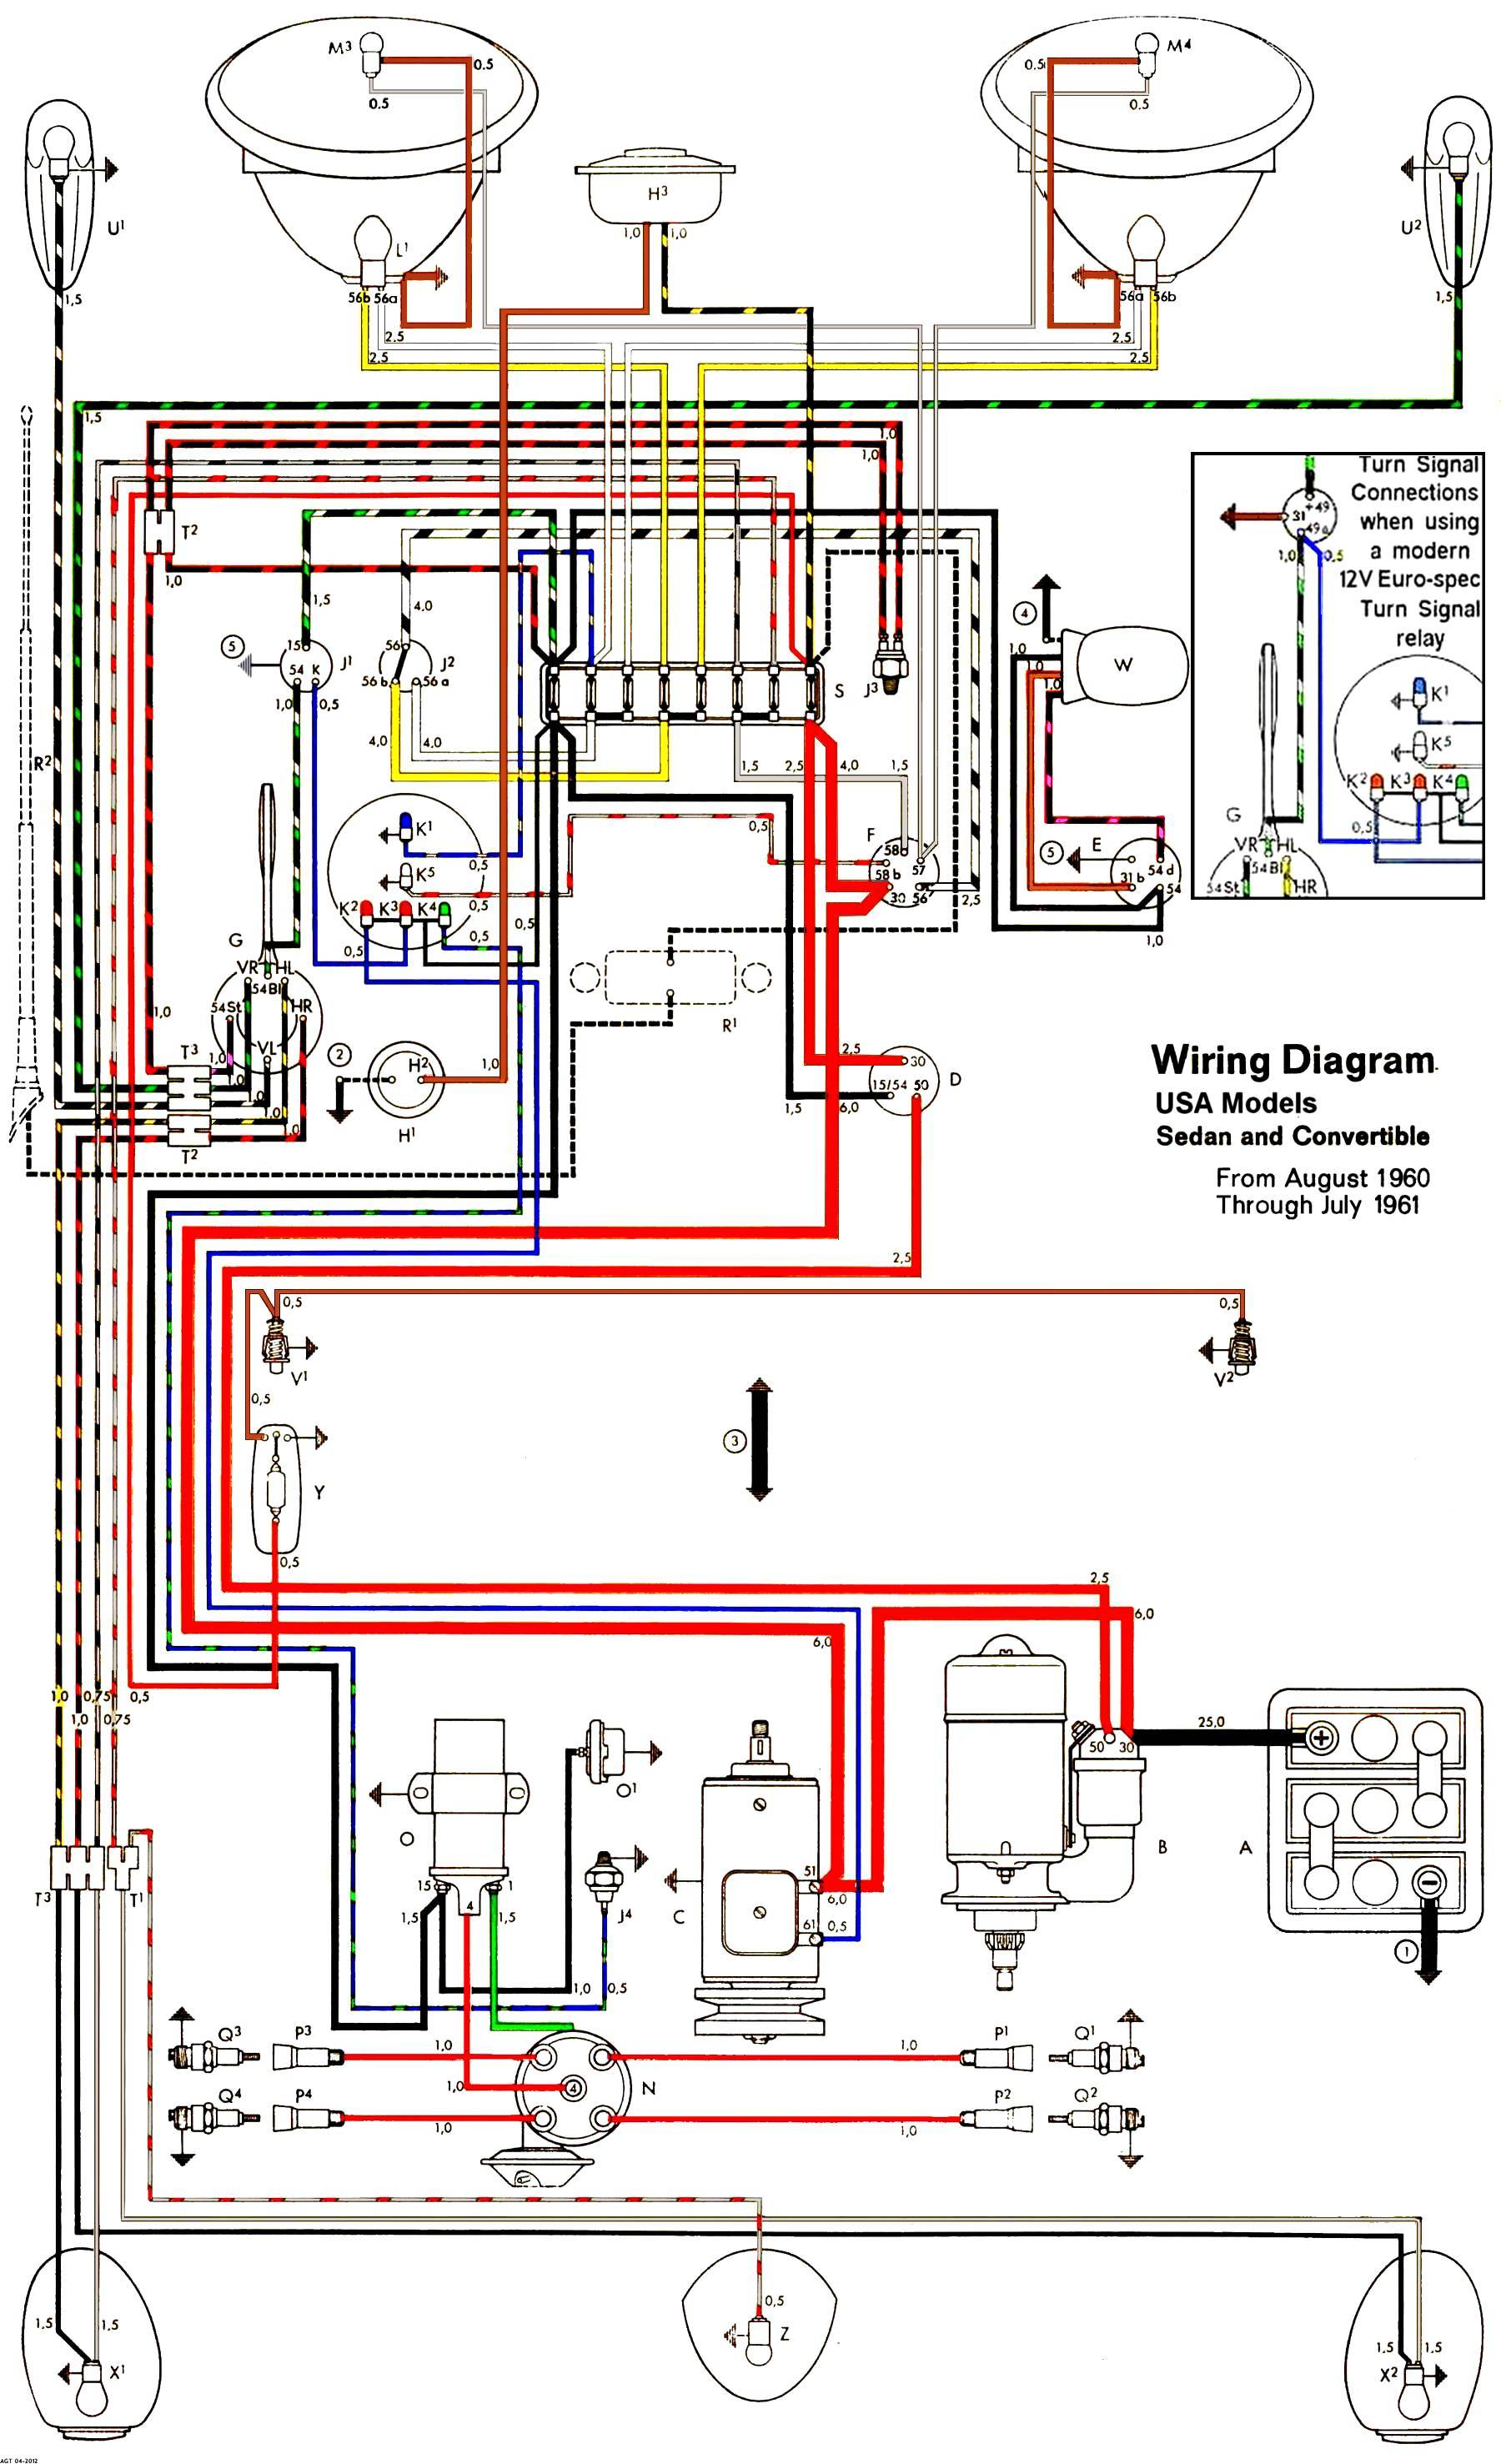 1956 Chevy Fuse Panel Diagram Wiring Library Light Switch Thesamba Com Type 1 Diagrams Box